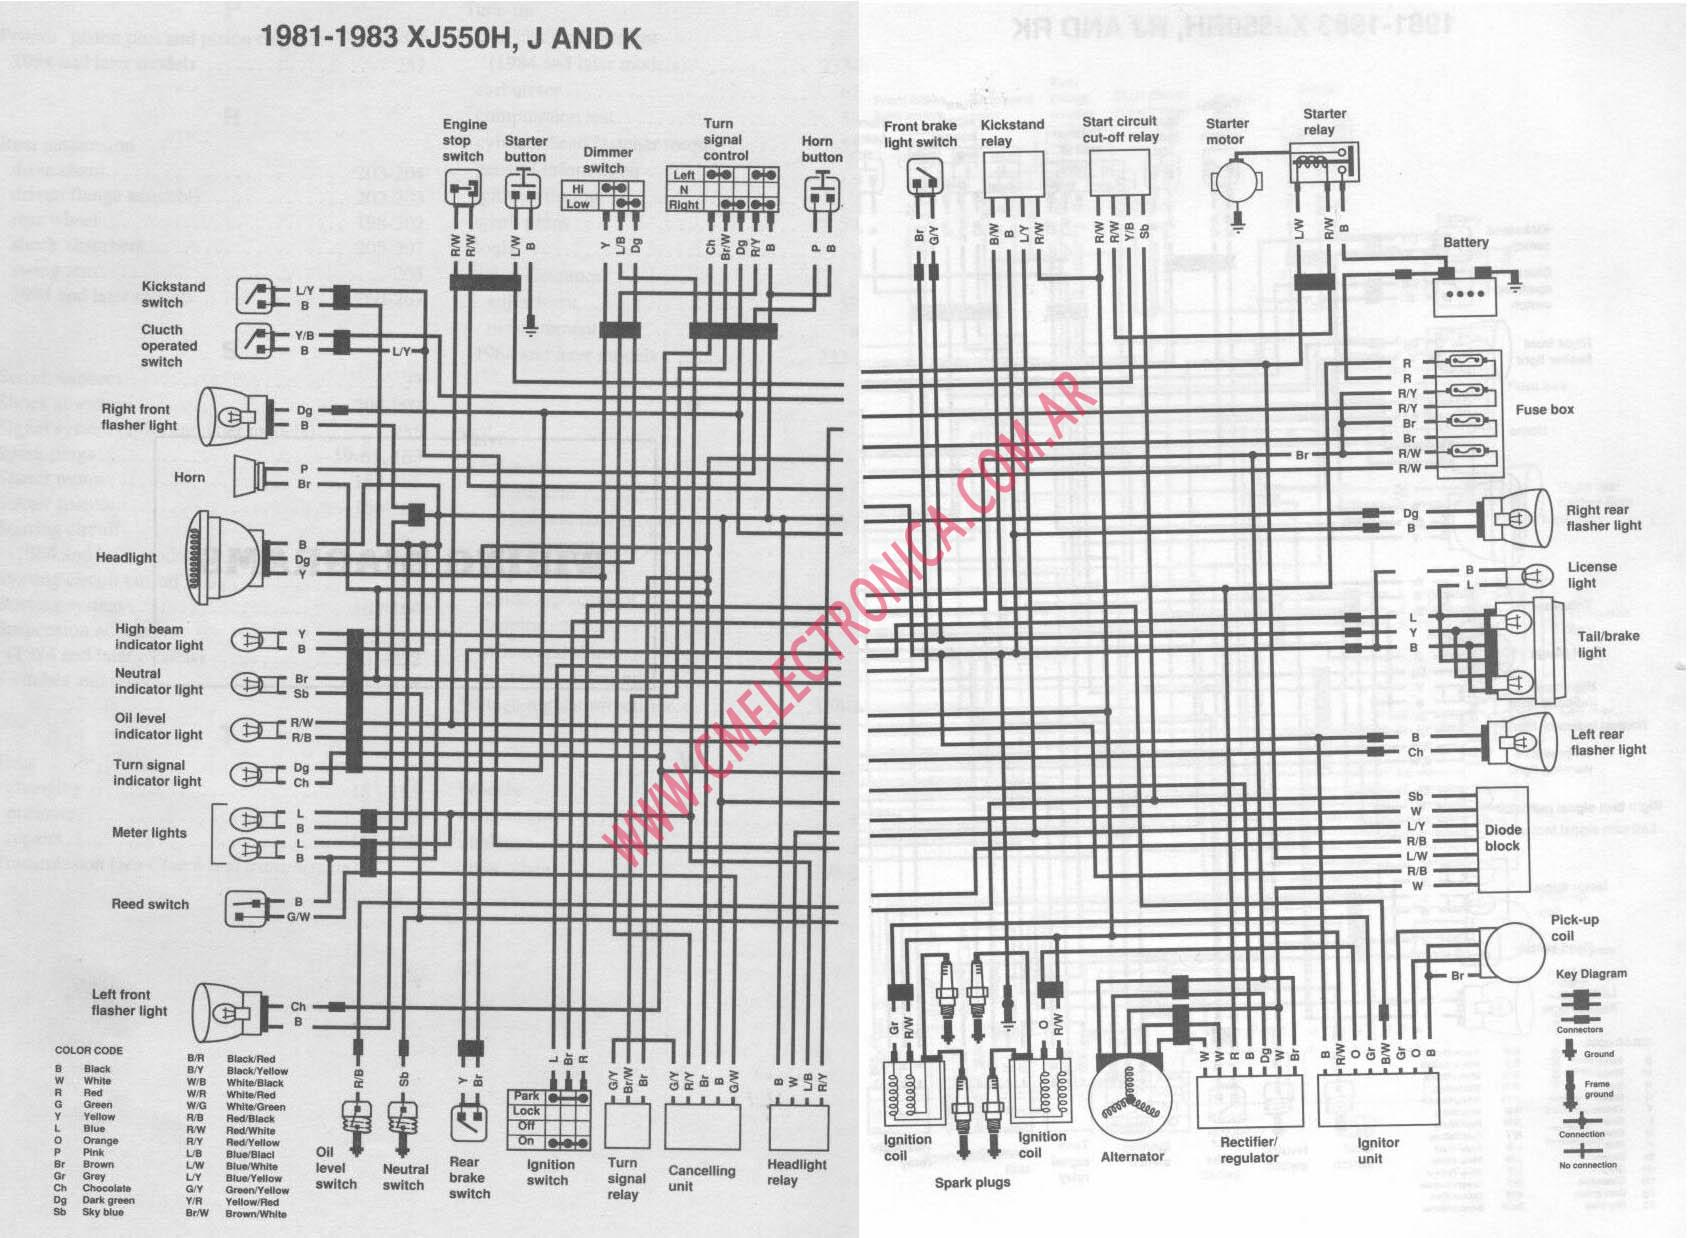 1980 Yamaha Xs650 Wiring Diagram Will Be A Thing 1978 650 Special Xj650 Maxim Get Free 1975